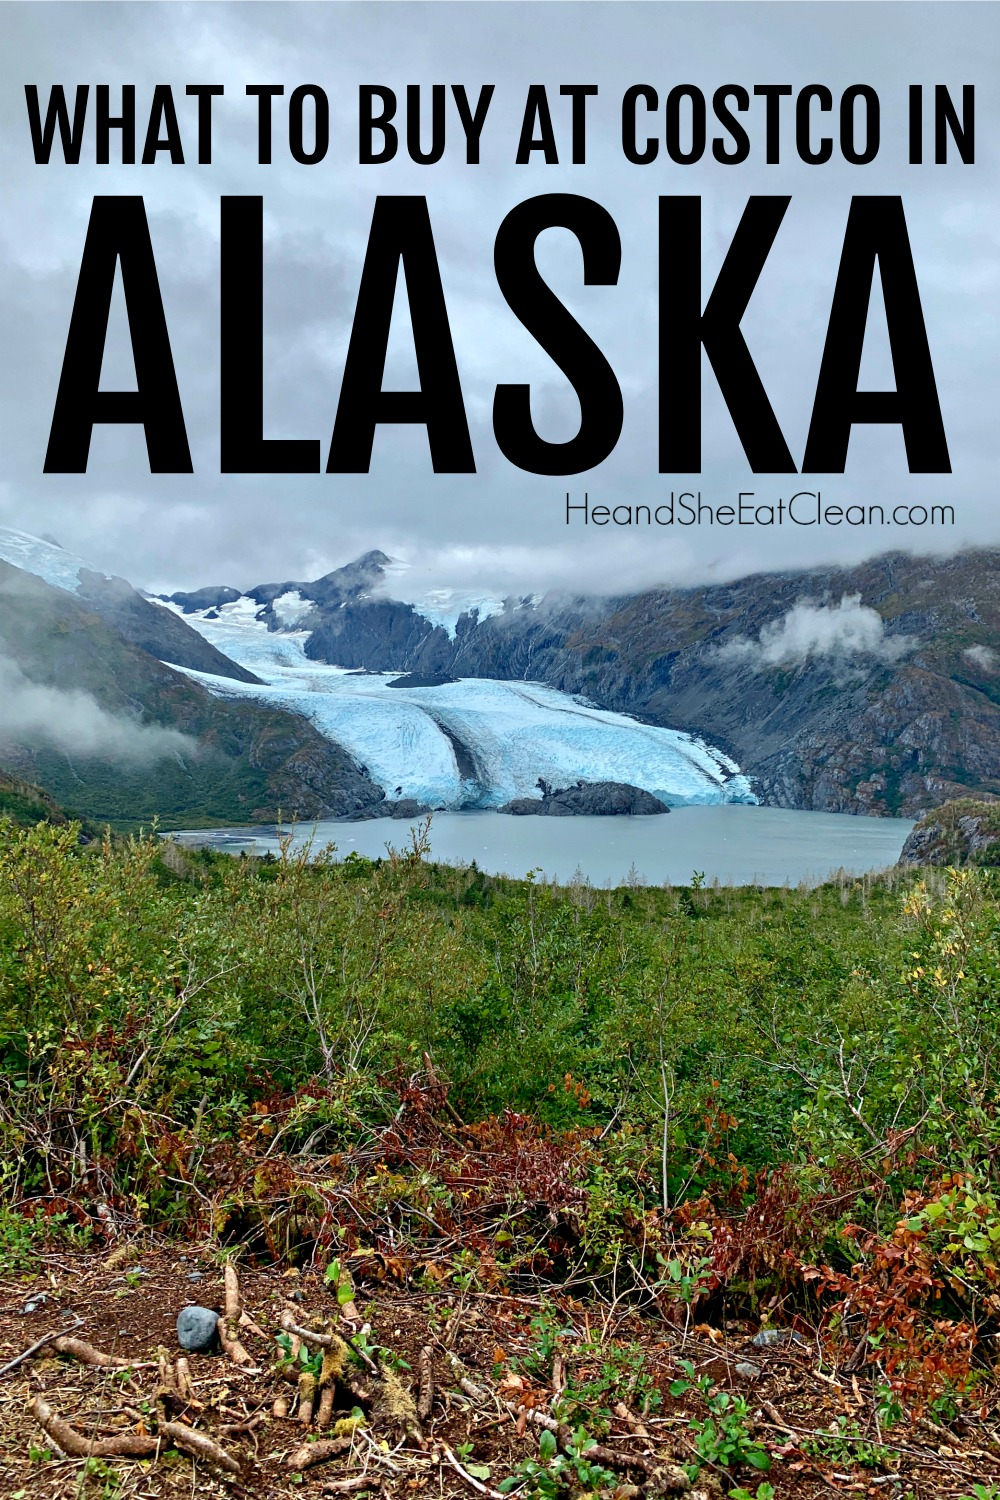 picture of a glacier in Alaska with text that reads what to buy at Costco in Alaska